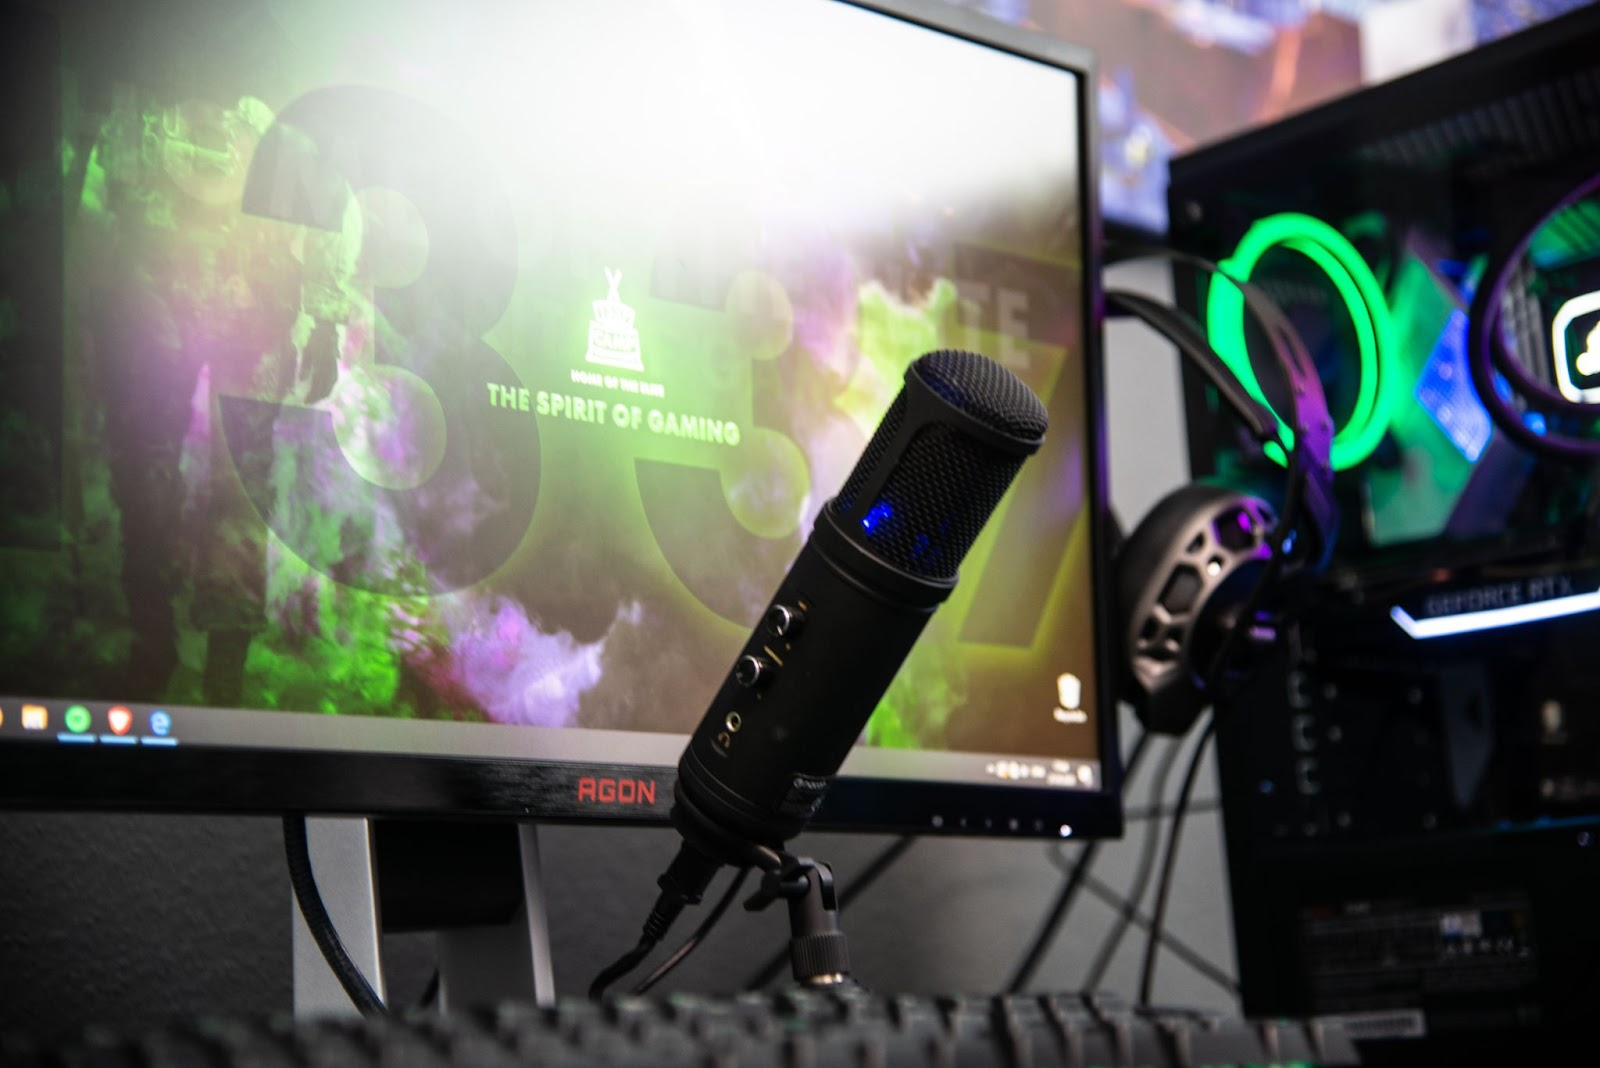 Streaming on Twitch TV